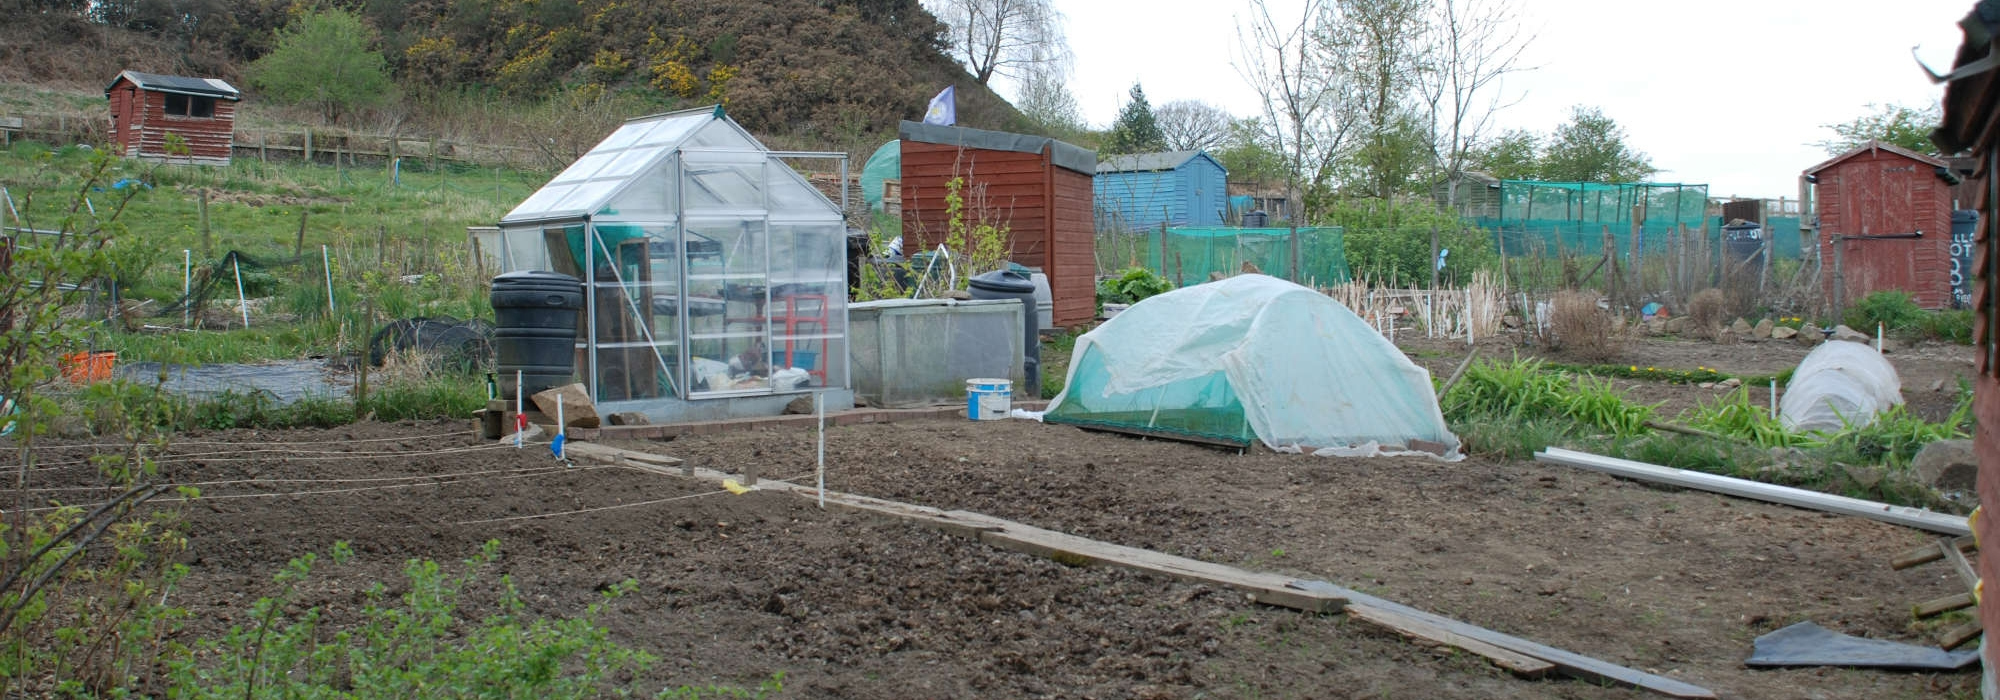 Allotment, soil at forefront of photo, sheds and greenhouses in background, hill can be seen in the very background of photo